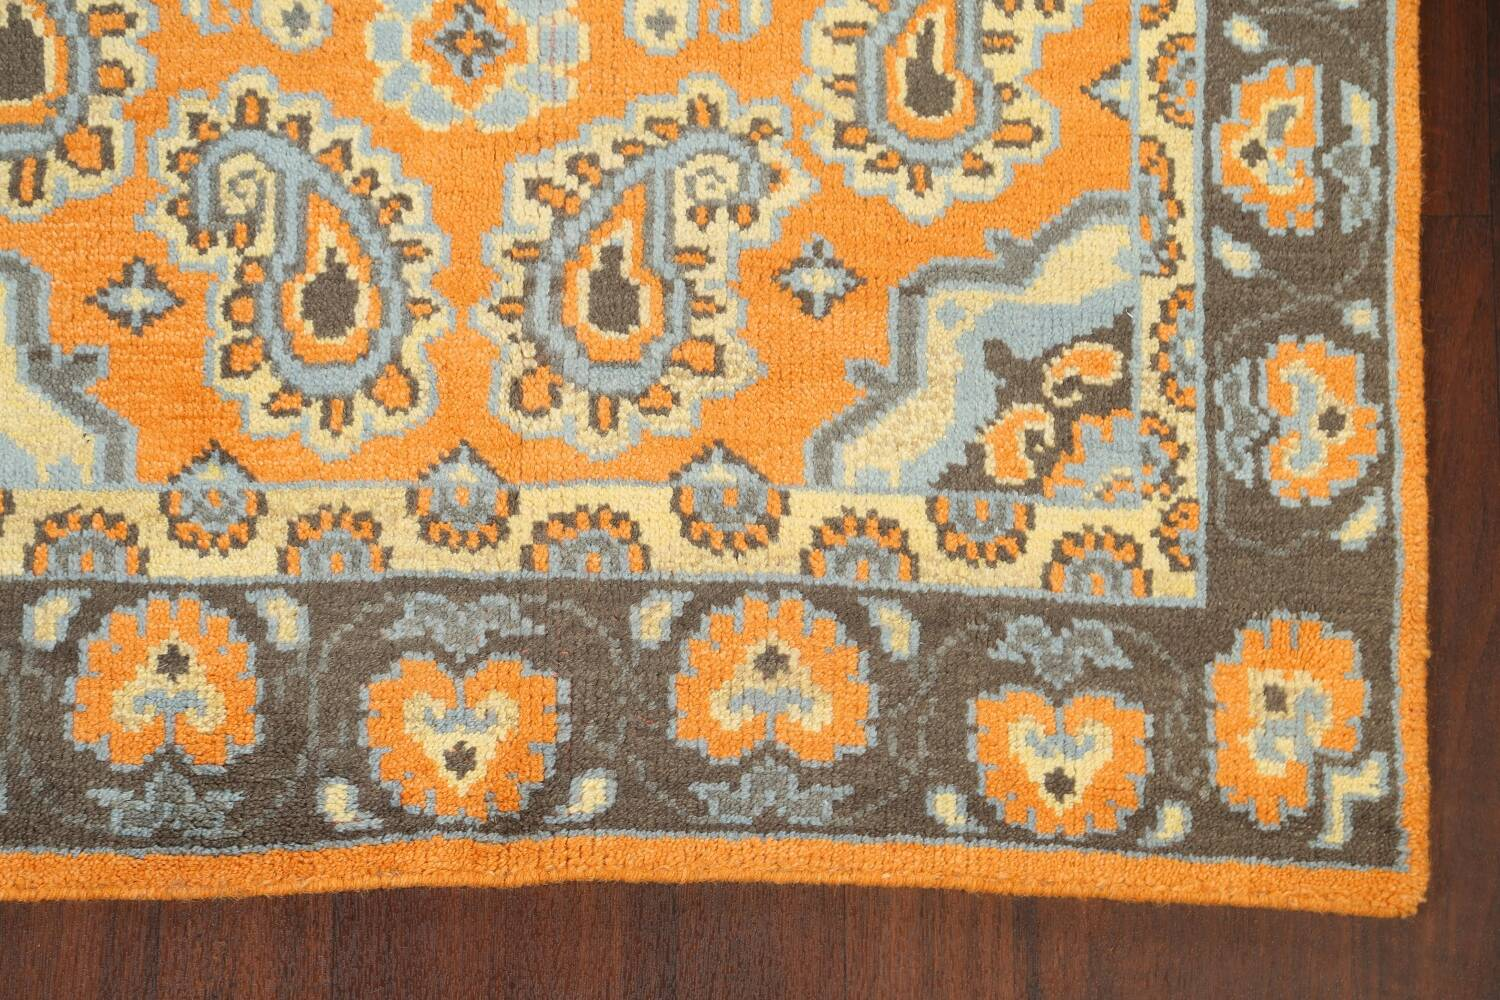 Paisley Abstract Oriental Area Rug 5x8 image 5